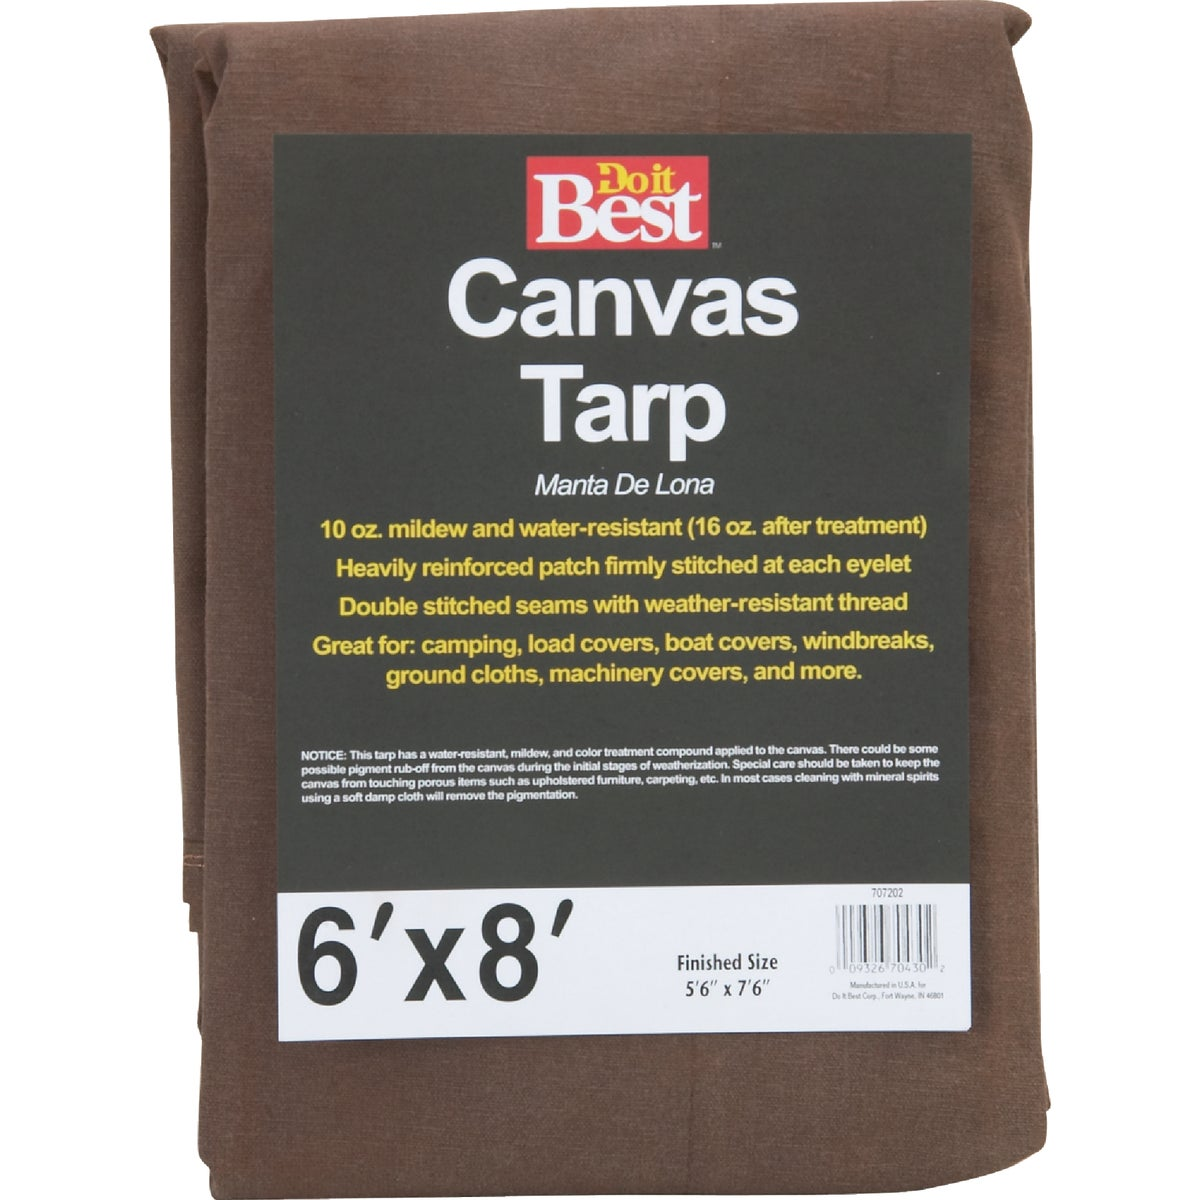 6X8-10OZ CANVAS TARP